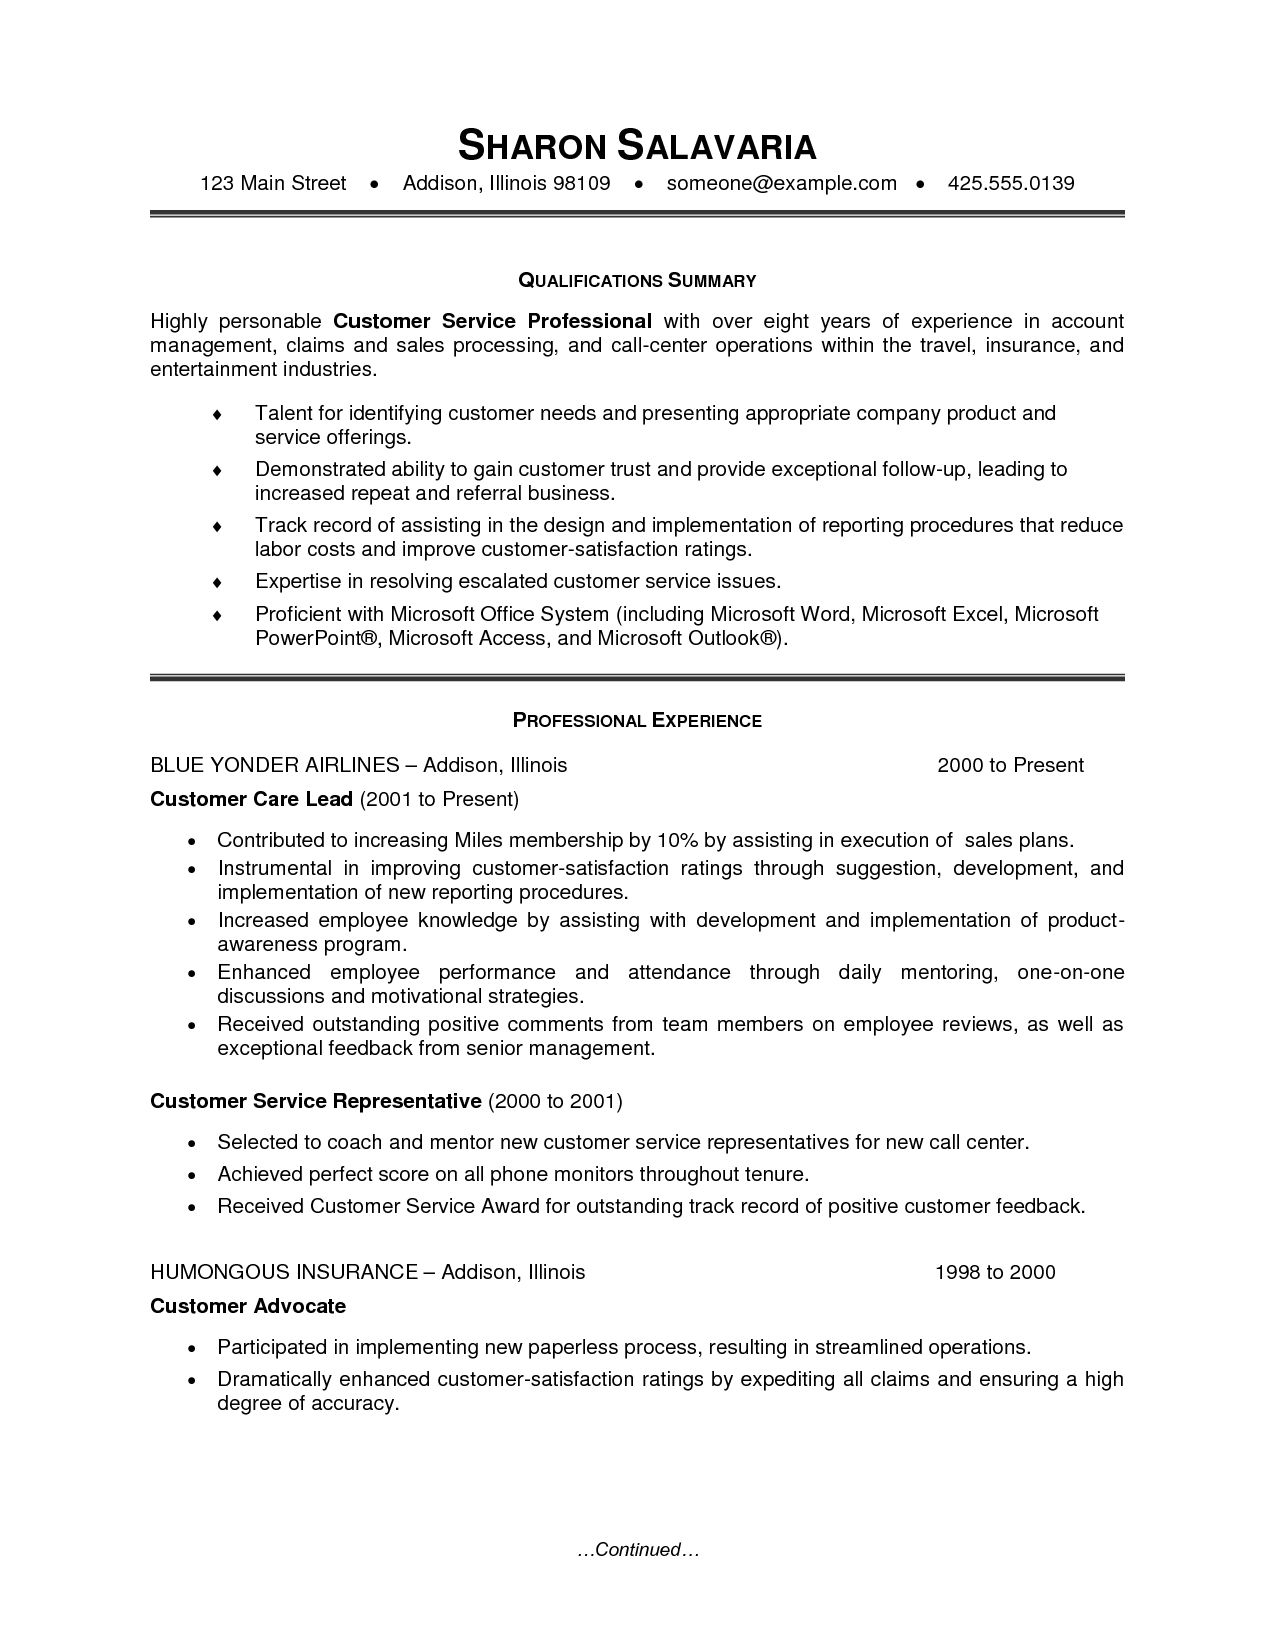 Resume Summary Examples How To Write An Executive Summary For A Research Paperlearn How